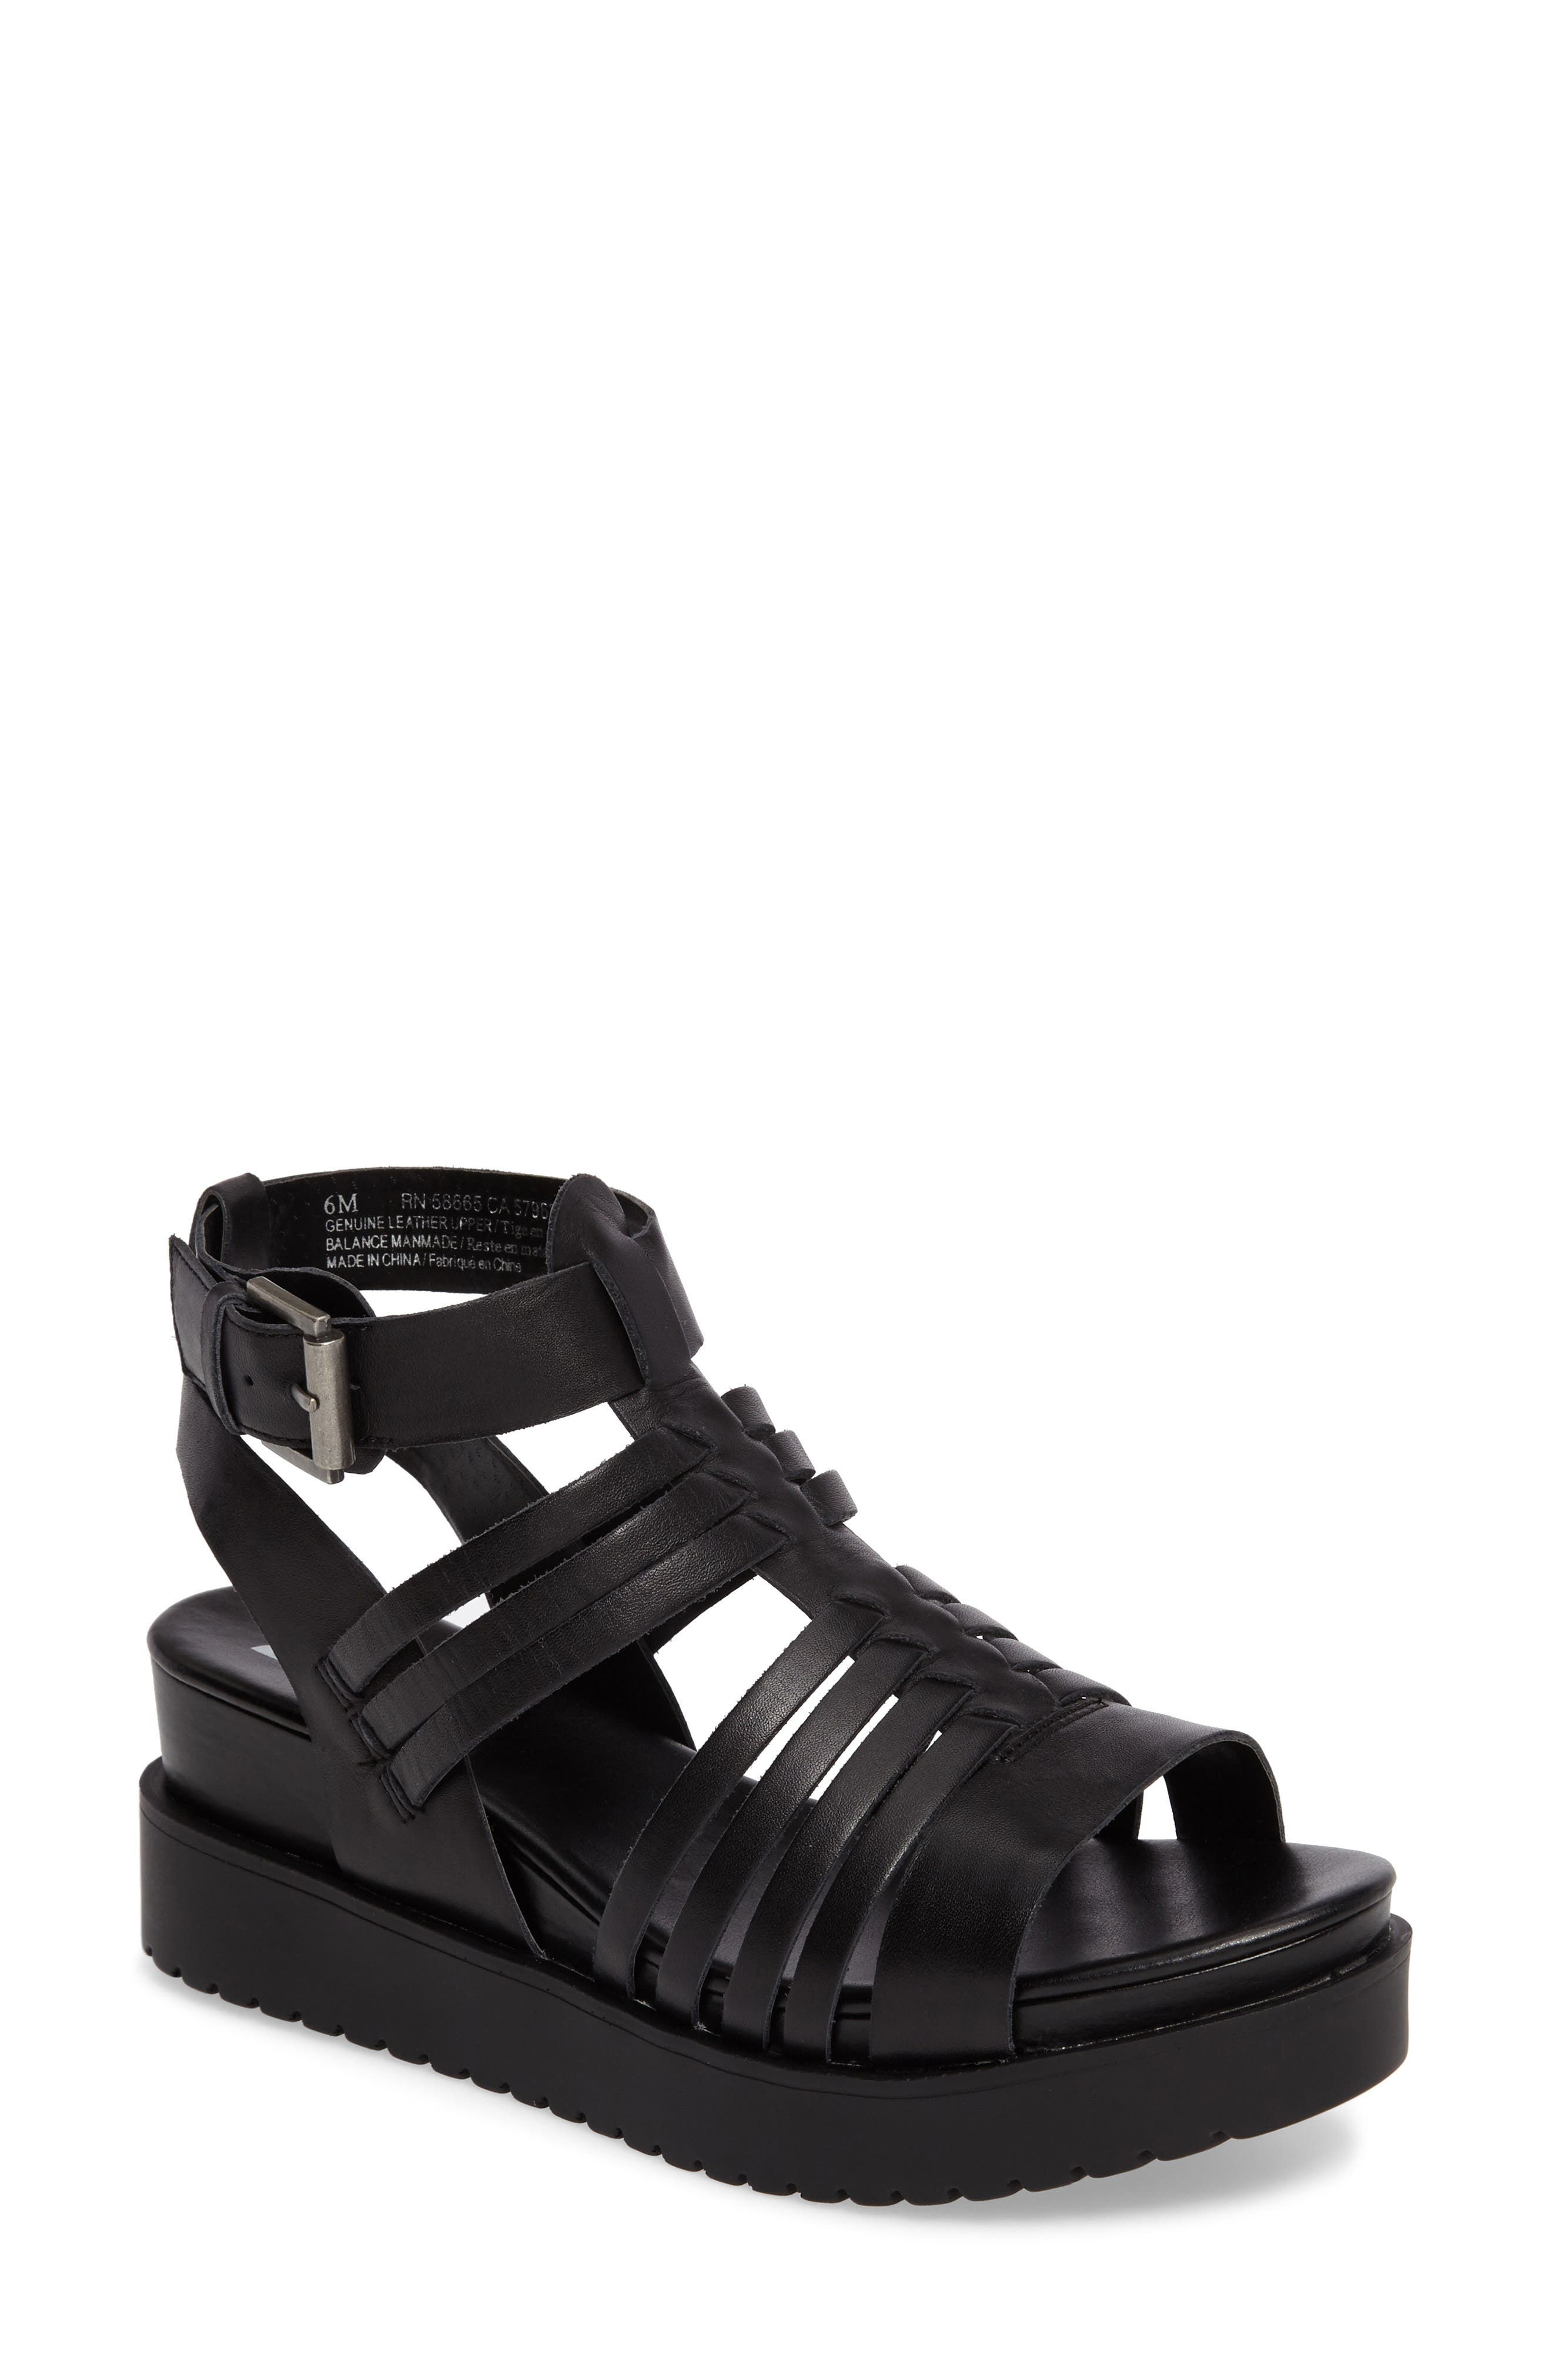 Ronnie Gladiator Platform Sandal,                         Main,                         color, Black Leather